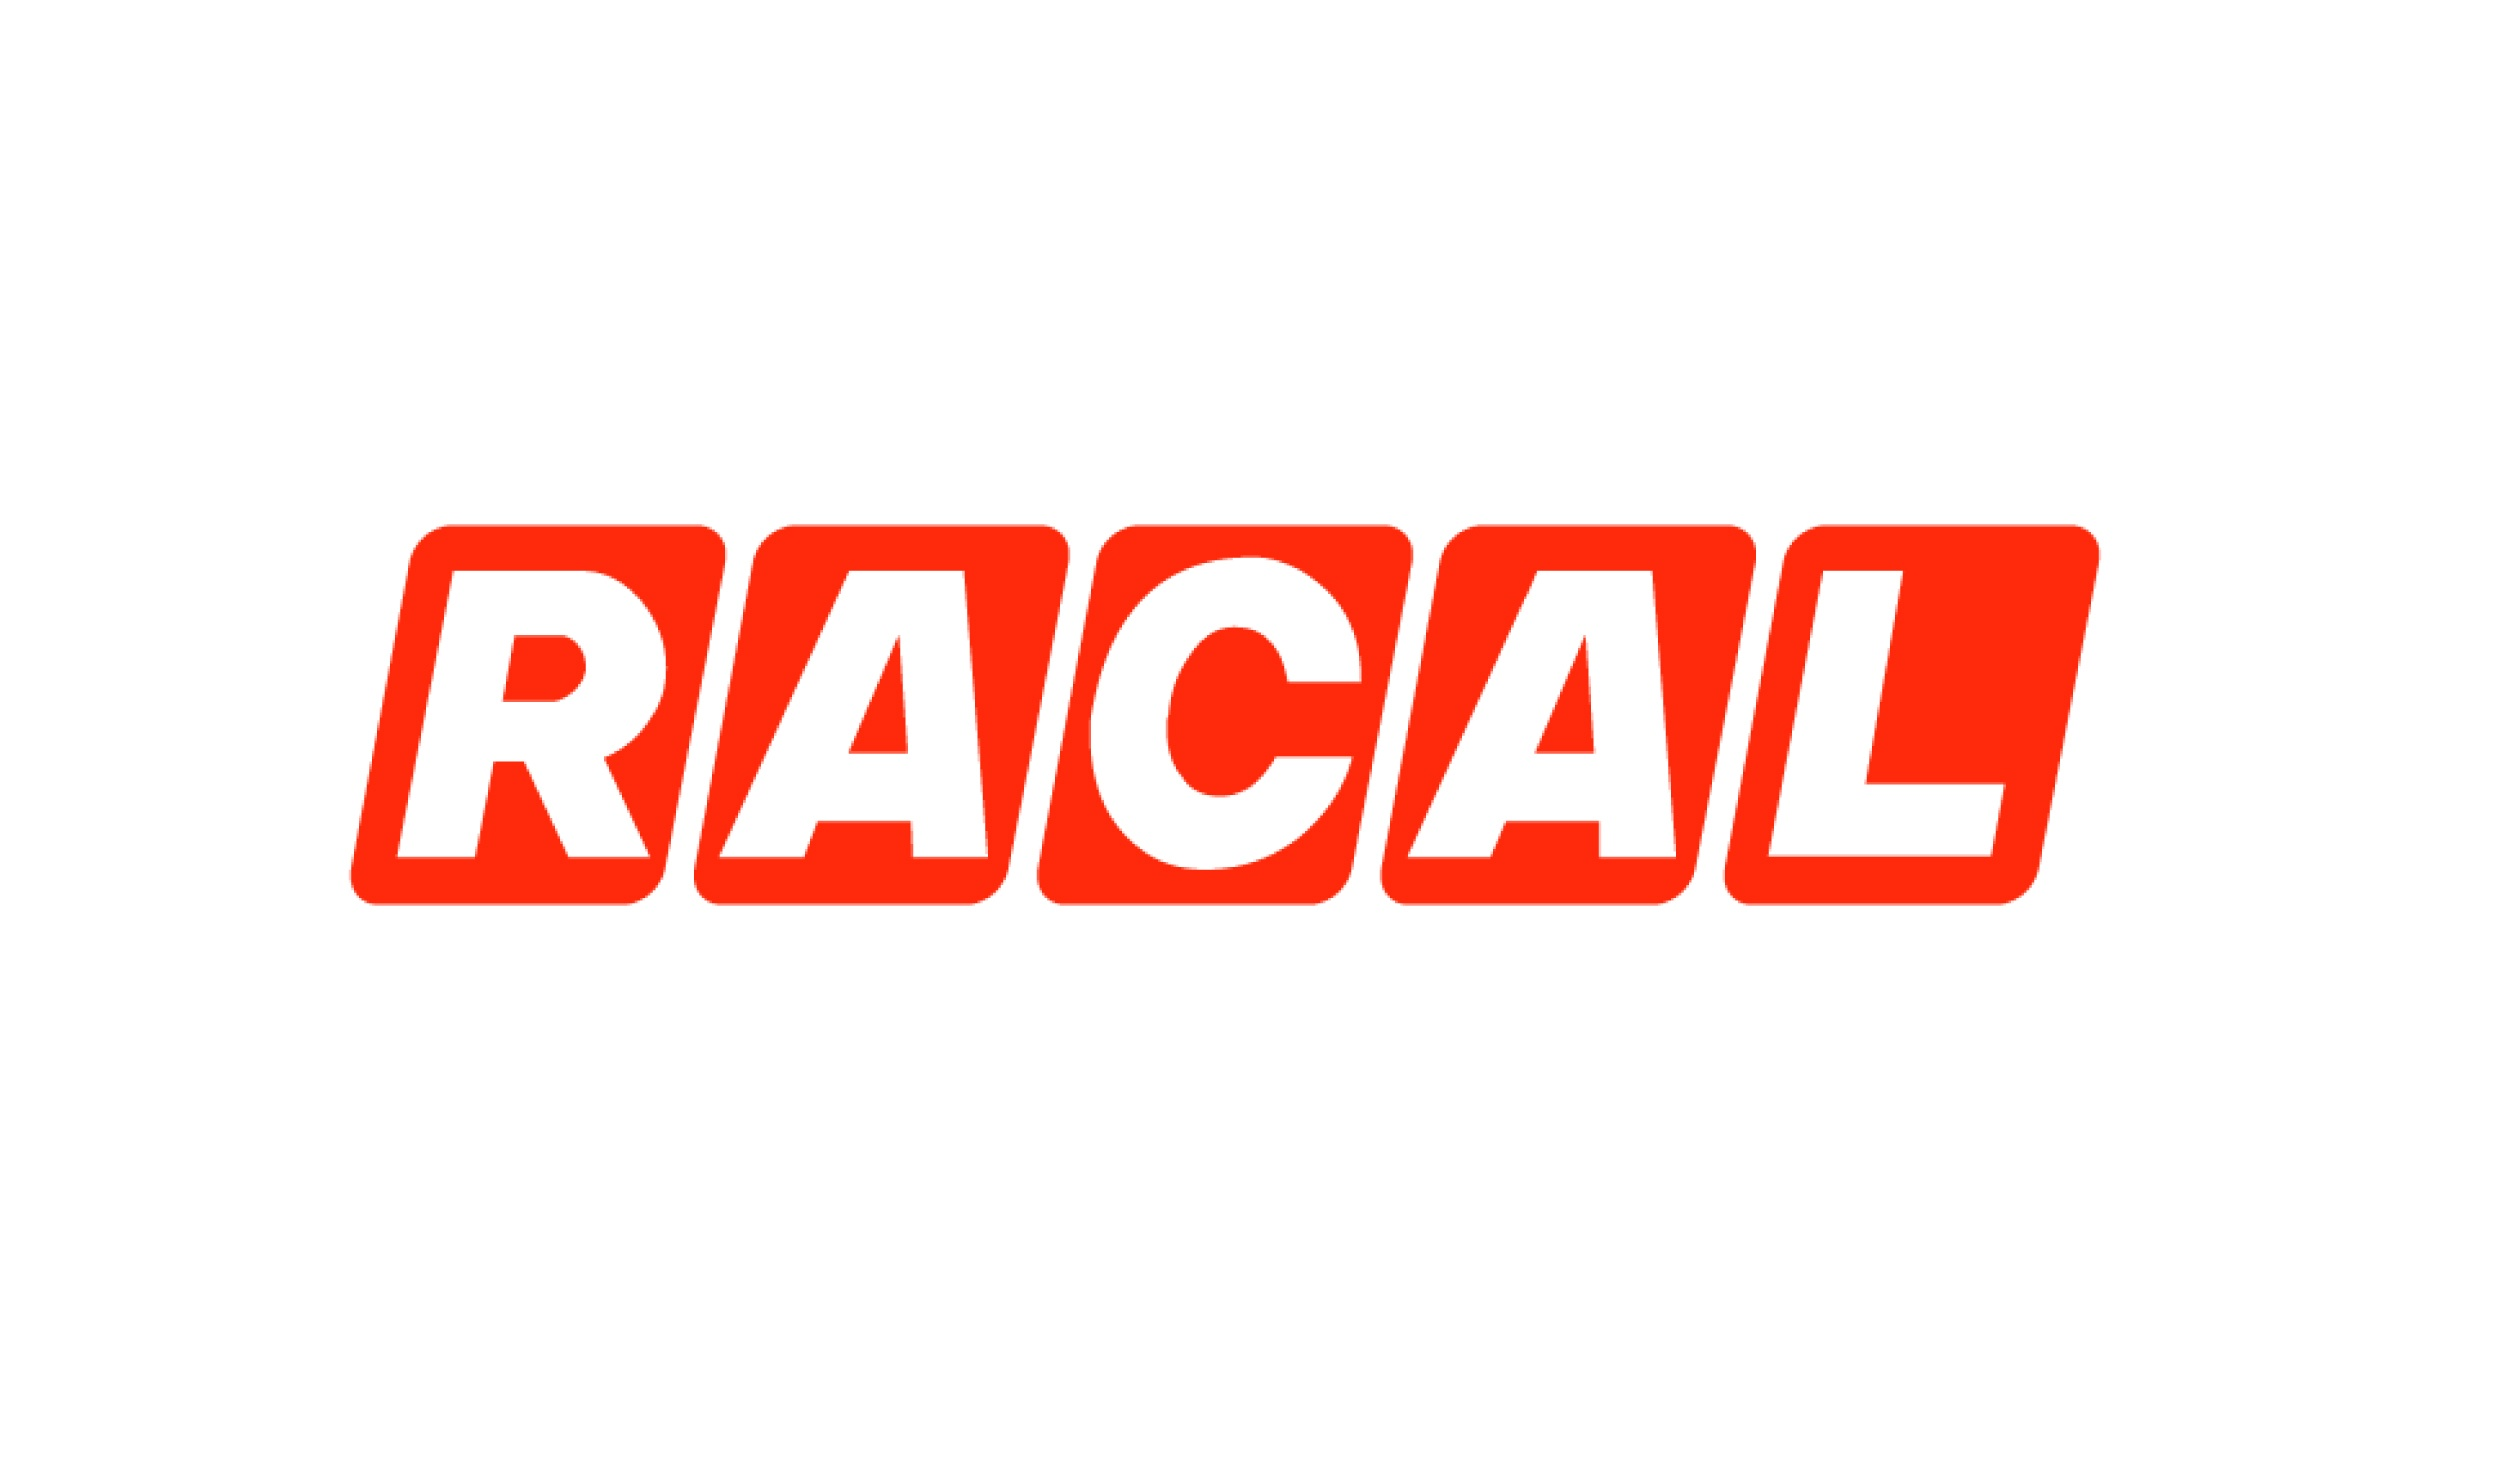 Famous Brand Name Inspirations RACAL